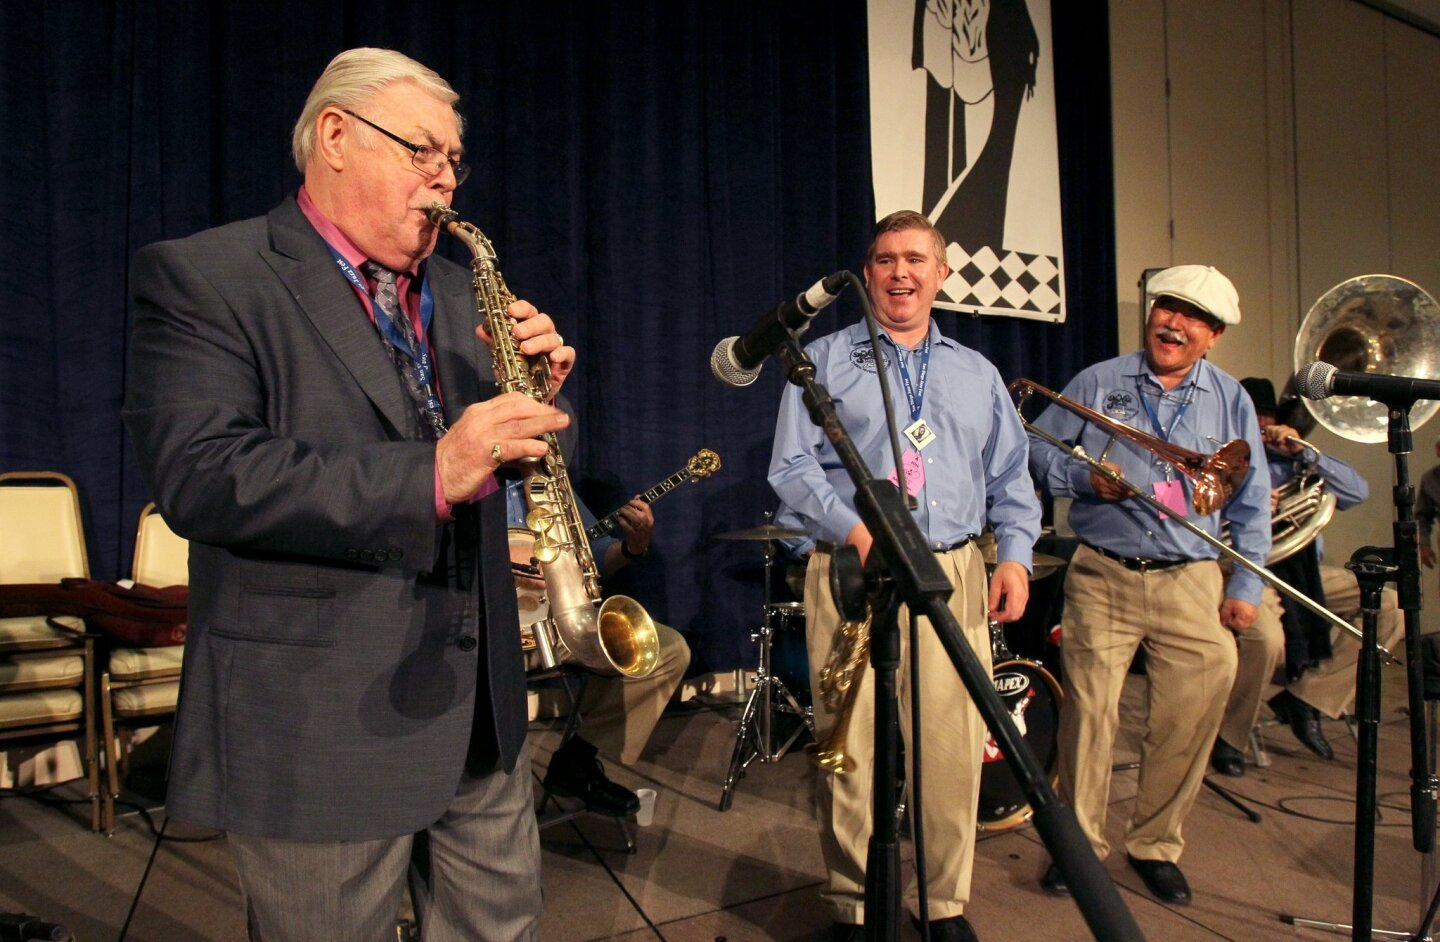 Jim Buchmann, at left, performs with the High Sierra Jazz Band at the 35th. Annual San Diego Jazz Fest.